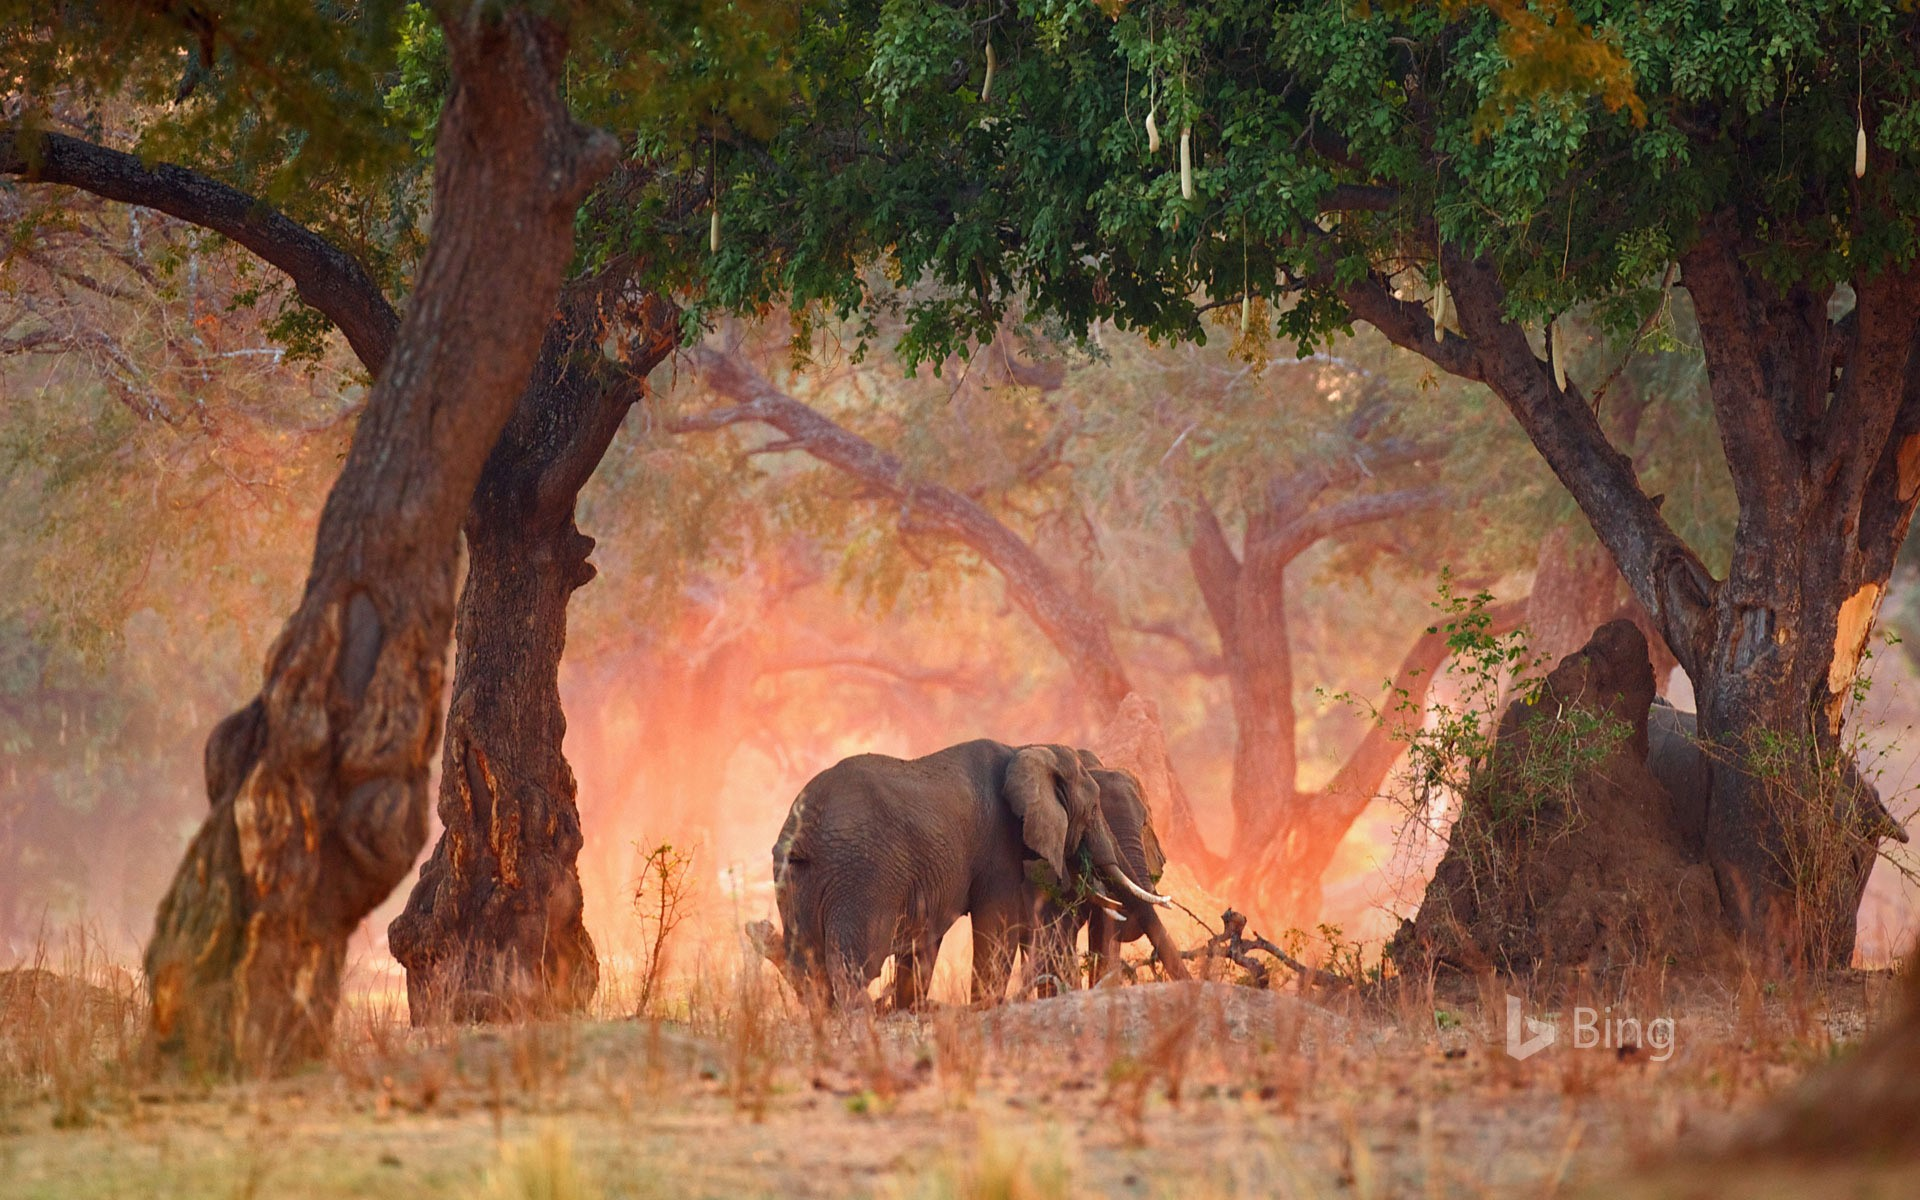 African bush elephants in Mana Pools National Park, Zimbabwe